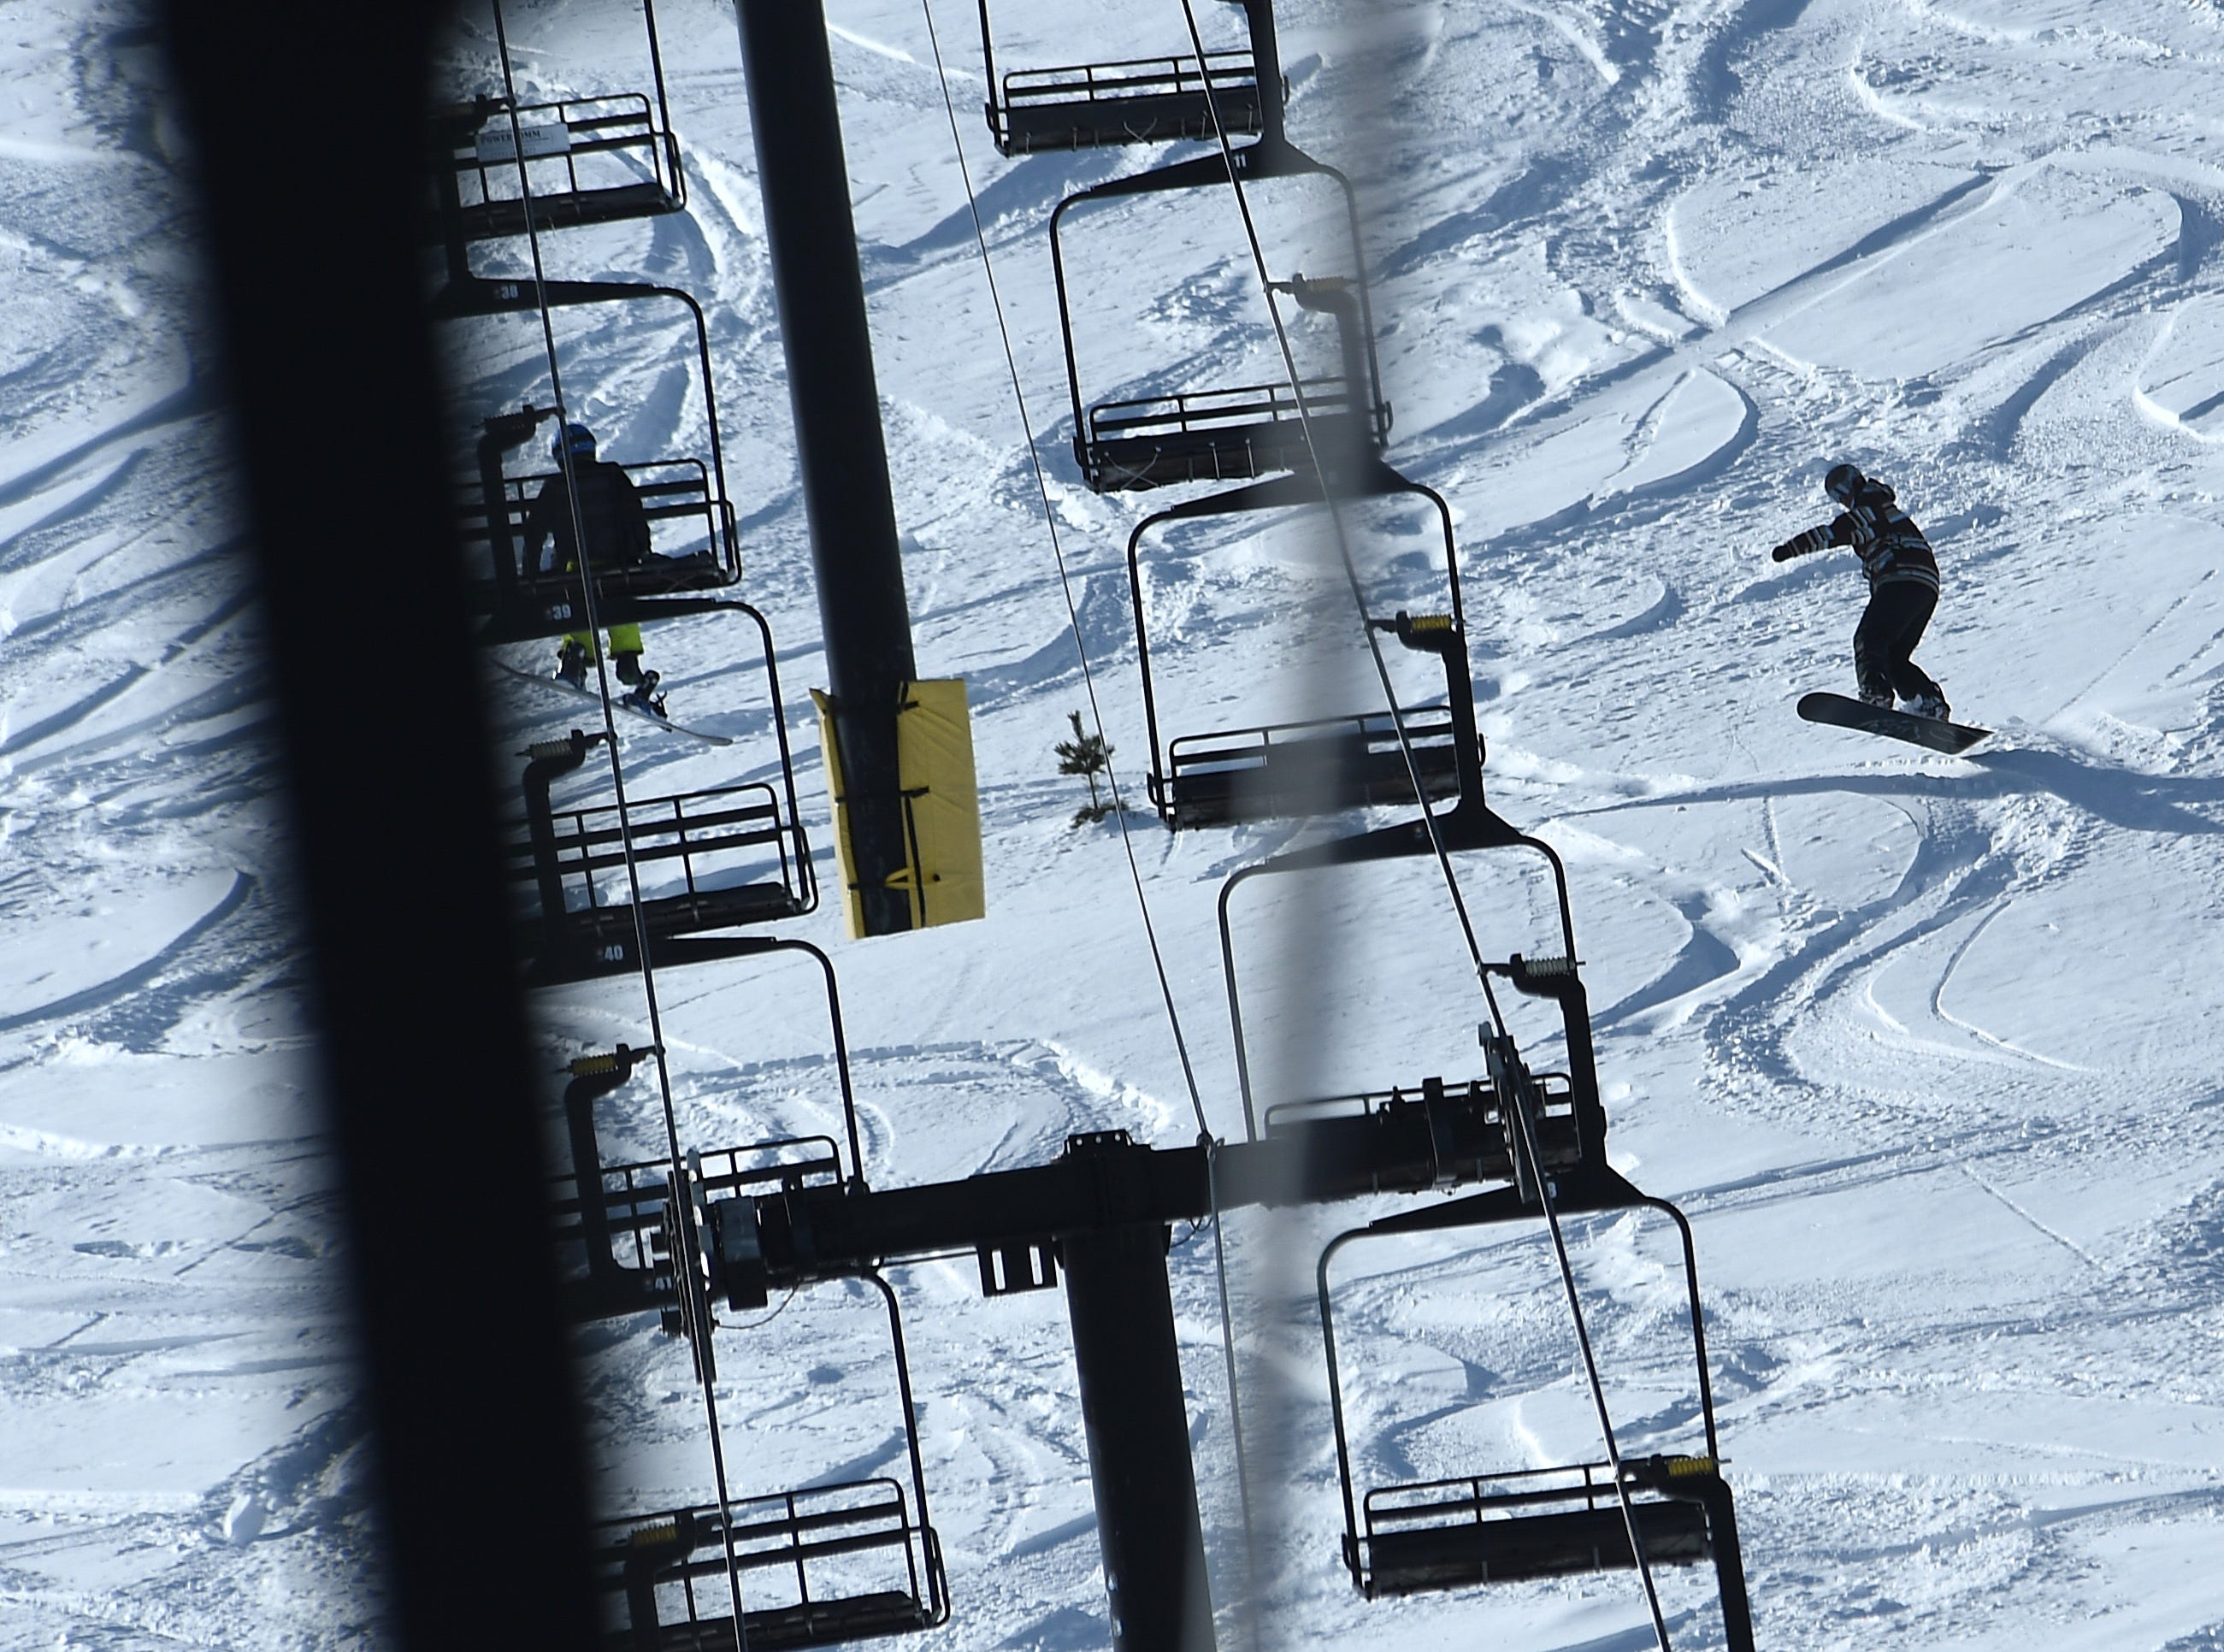 A snowboarder catches some air during opening day for the Sky Tavern Jr. Ski Program near Reno on Jan. 26, 2019.